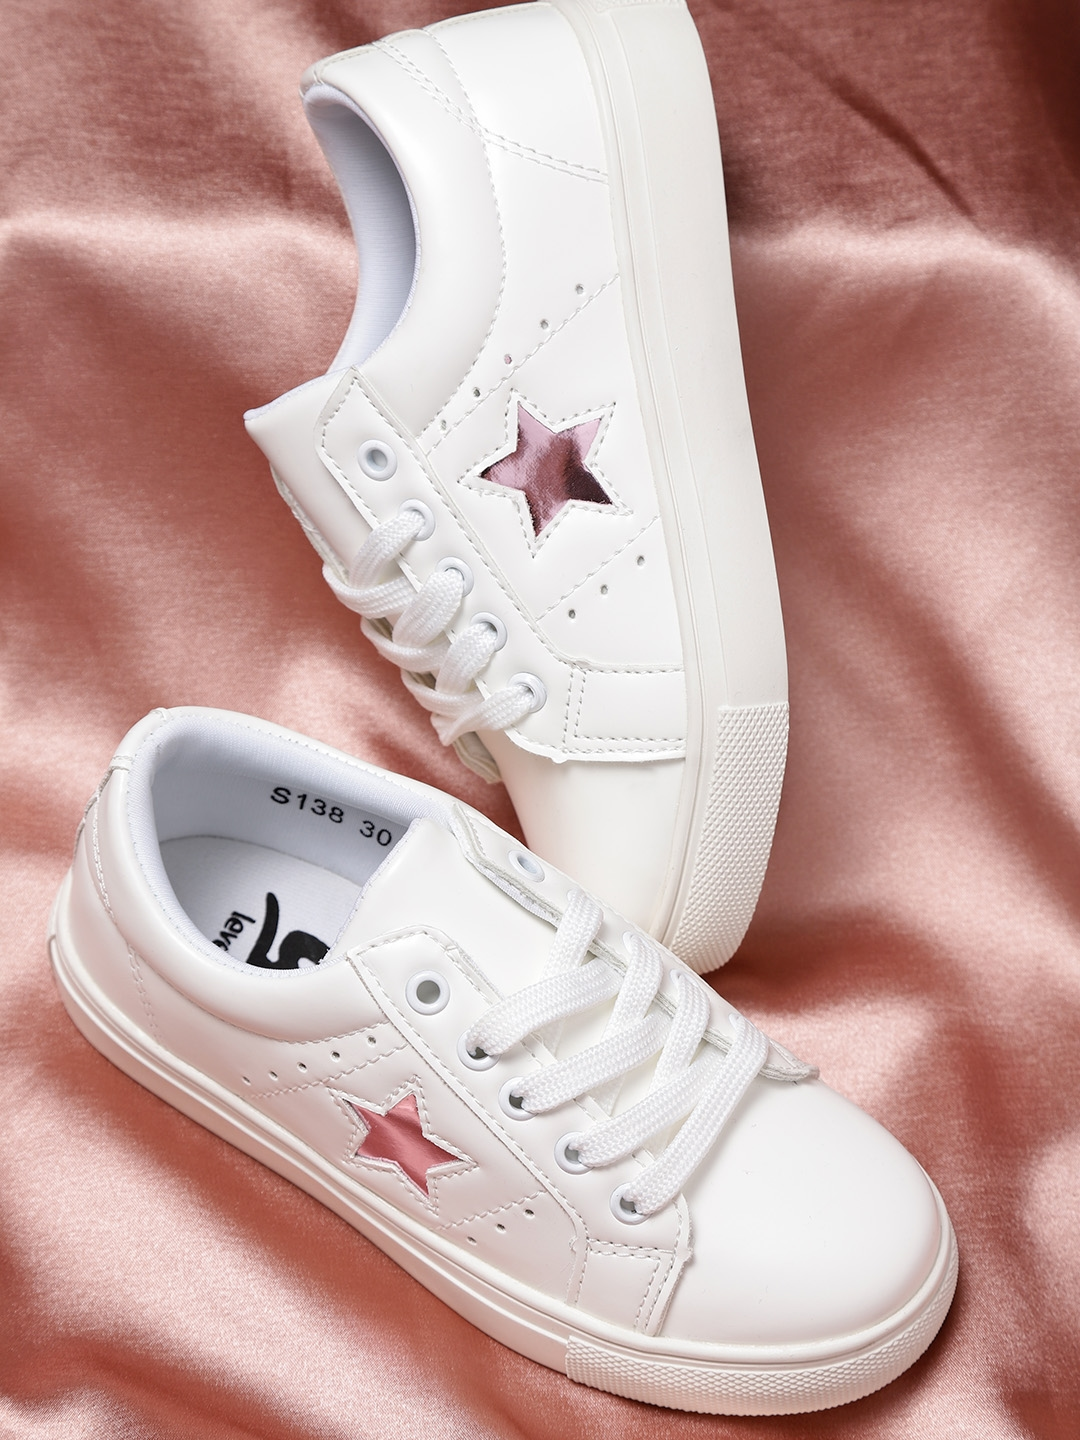 YK Girls White Sneakers - Casual Shoes